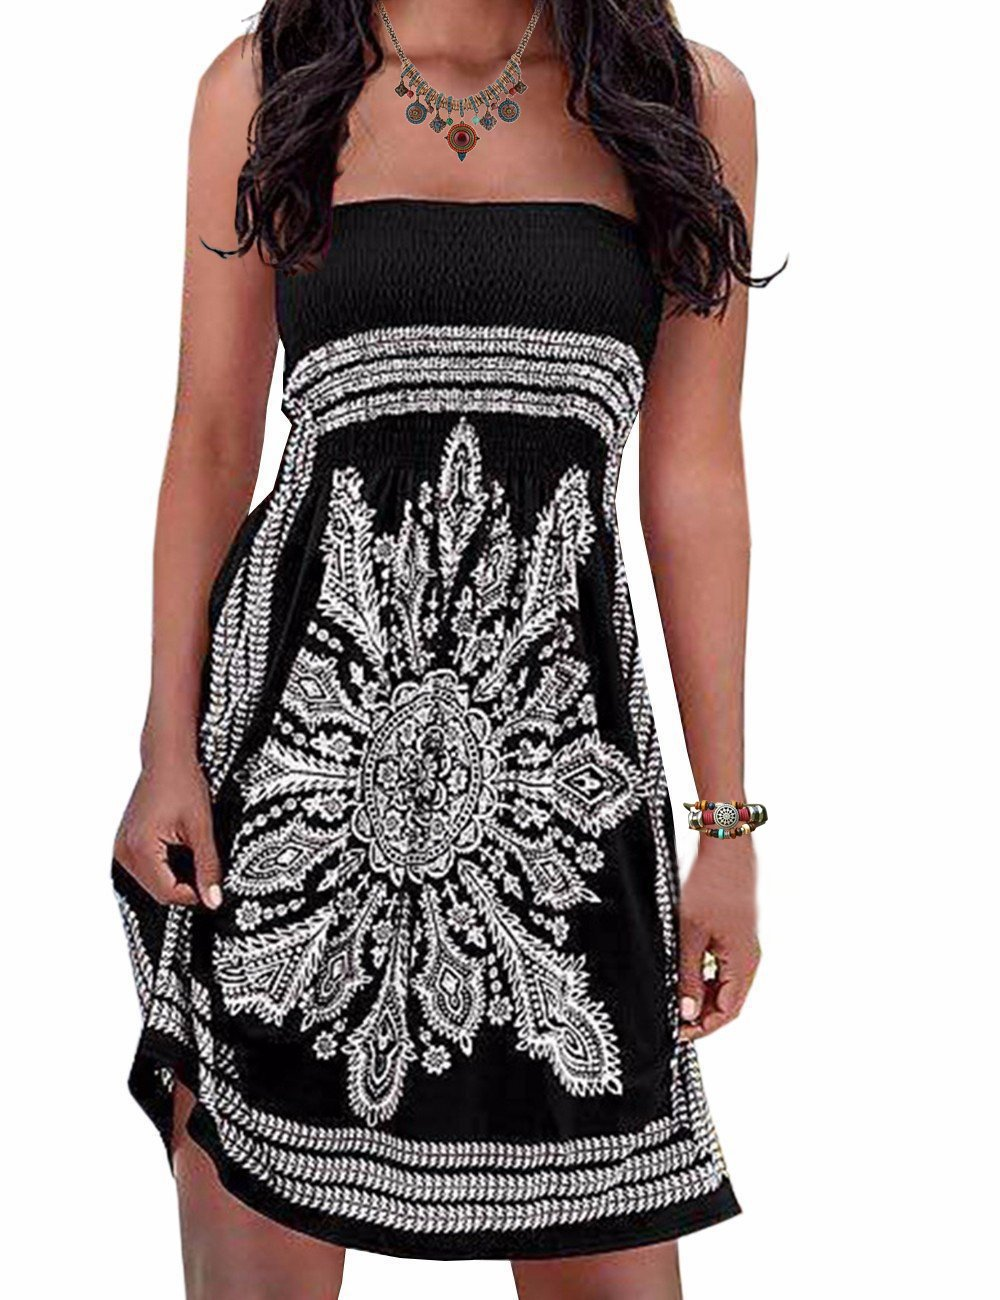 Initial Inital Women's Bathing Suit Cover-up Dress Casual Summer Dress Black, XS